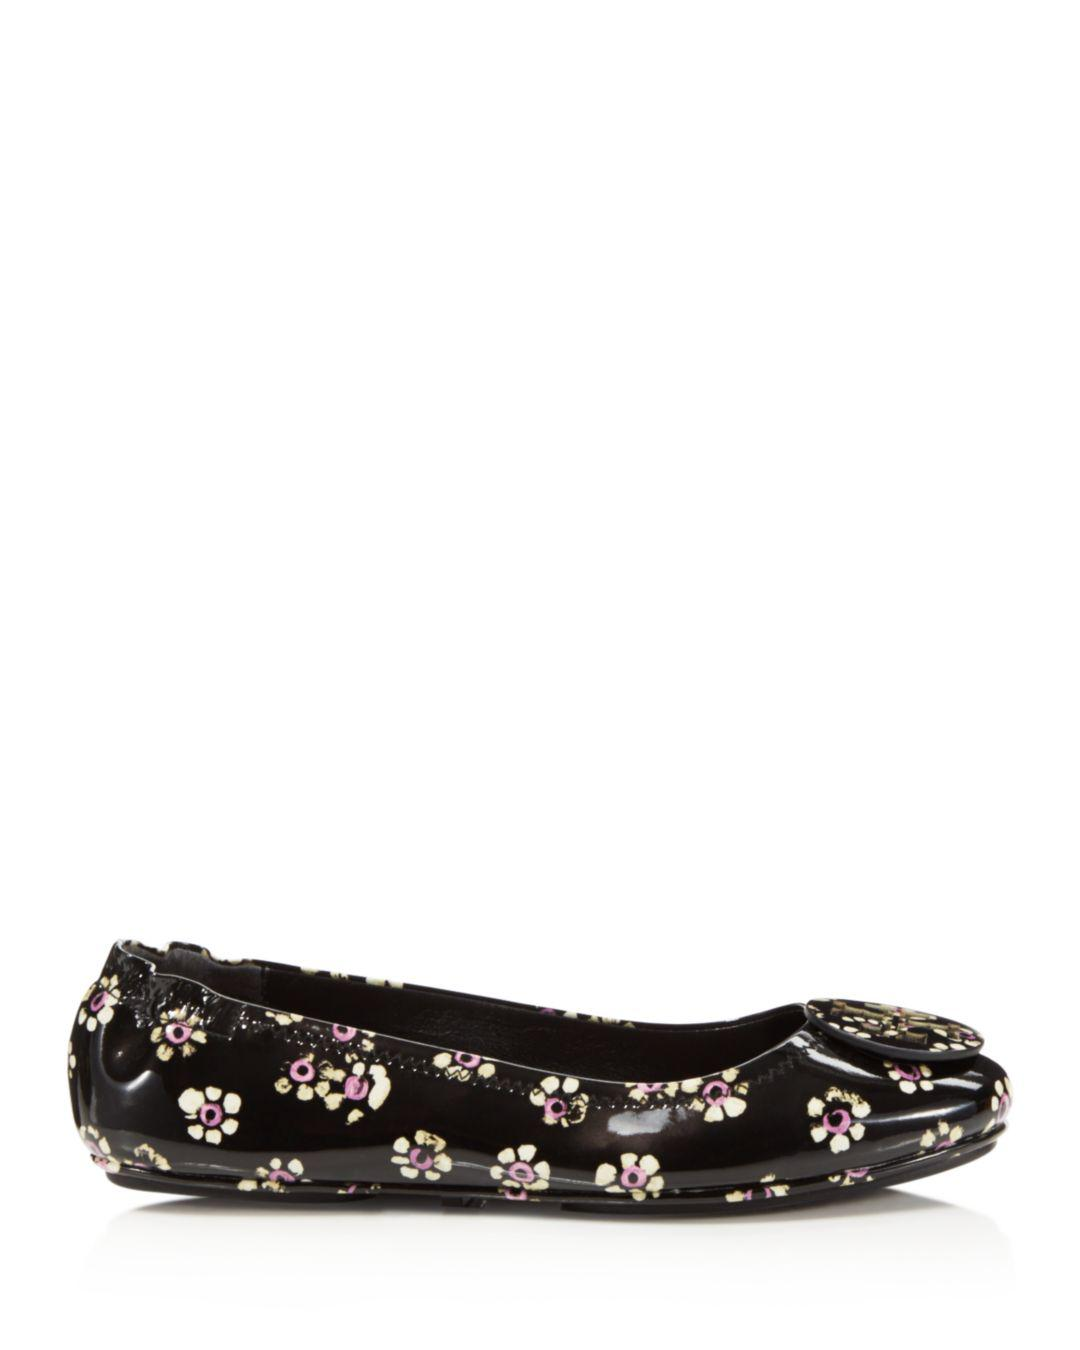 5ee4bbd4c Lyst - Tory Burch Women s Minnie Patent Leather Travel Ballet Flats in Black  - Save 60%